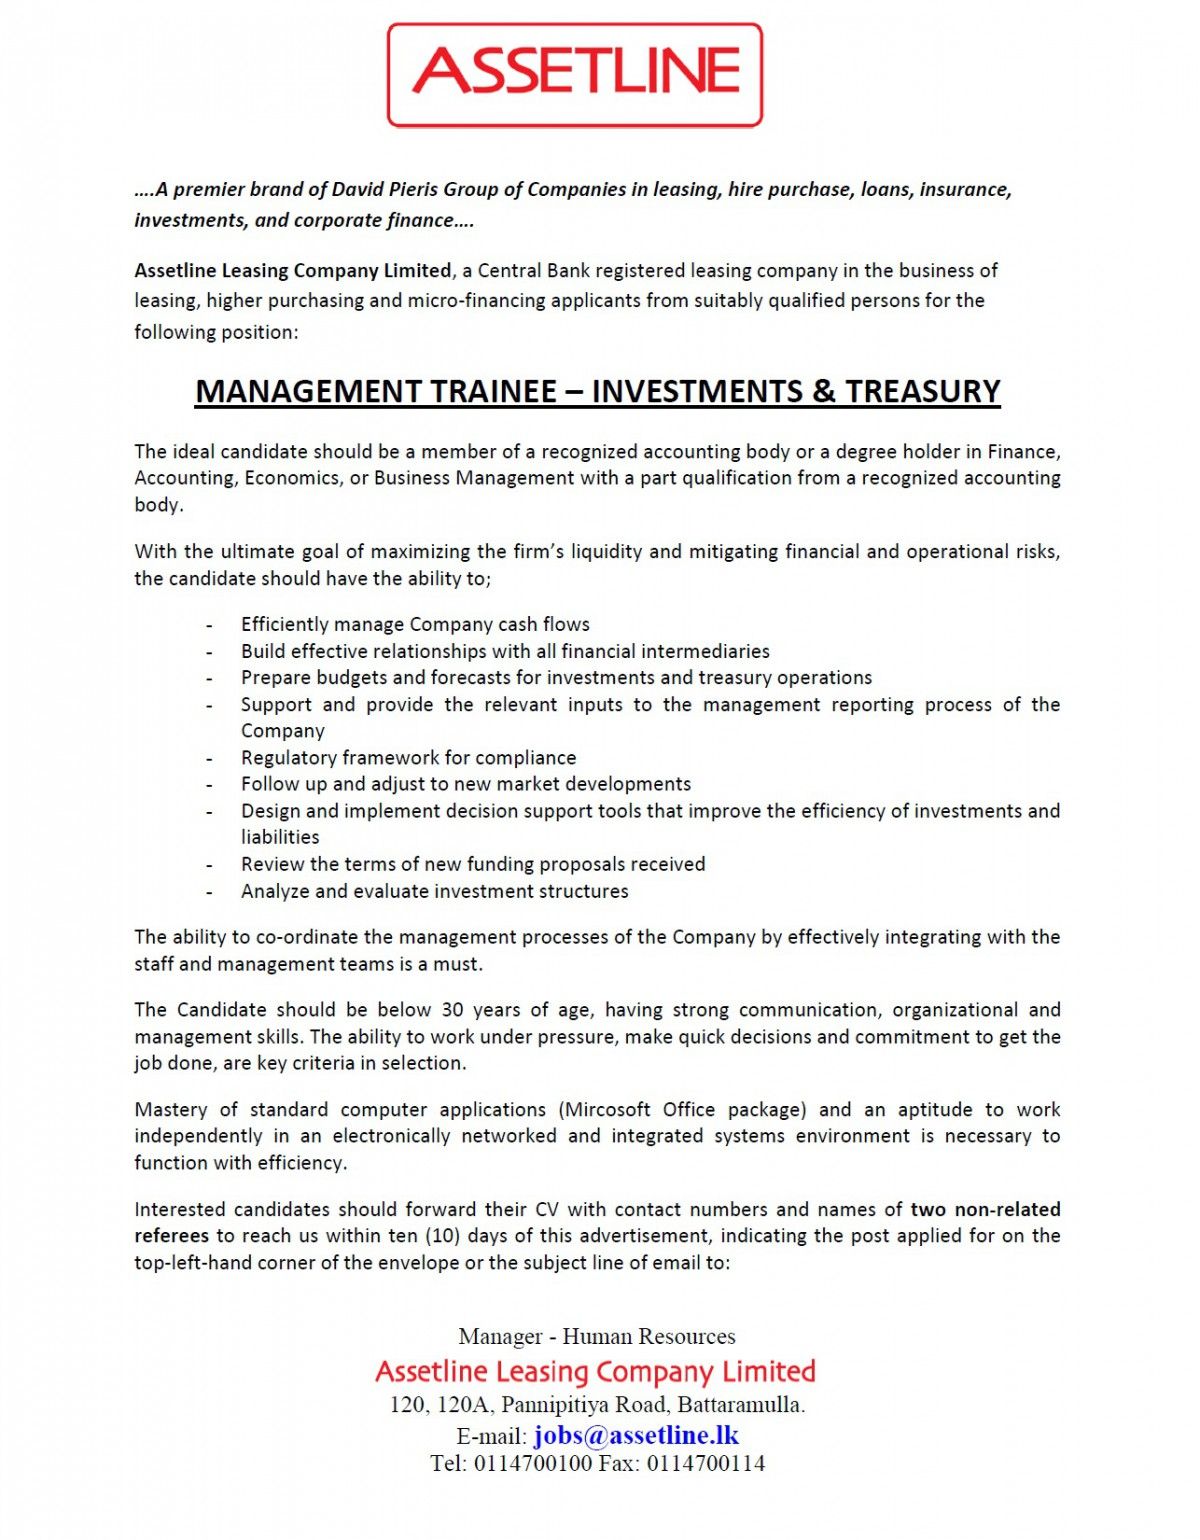 management trainee investment treasury job vacancy in sri lanka the candidate should be below 30 years of age having strong communication organizational and management skills the ability to work under pressure